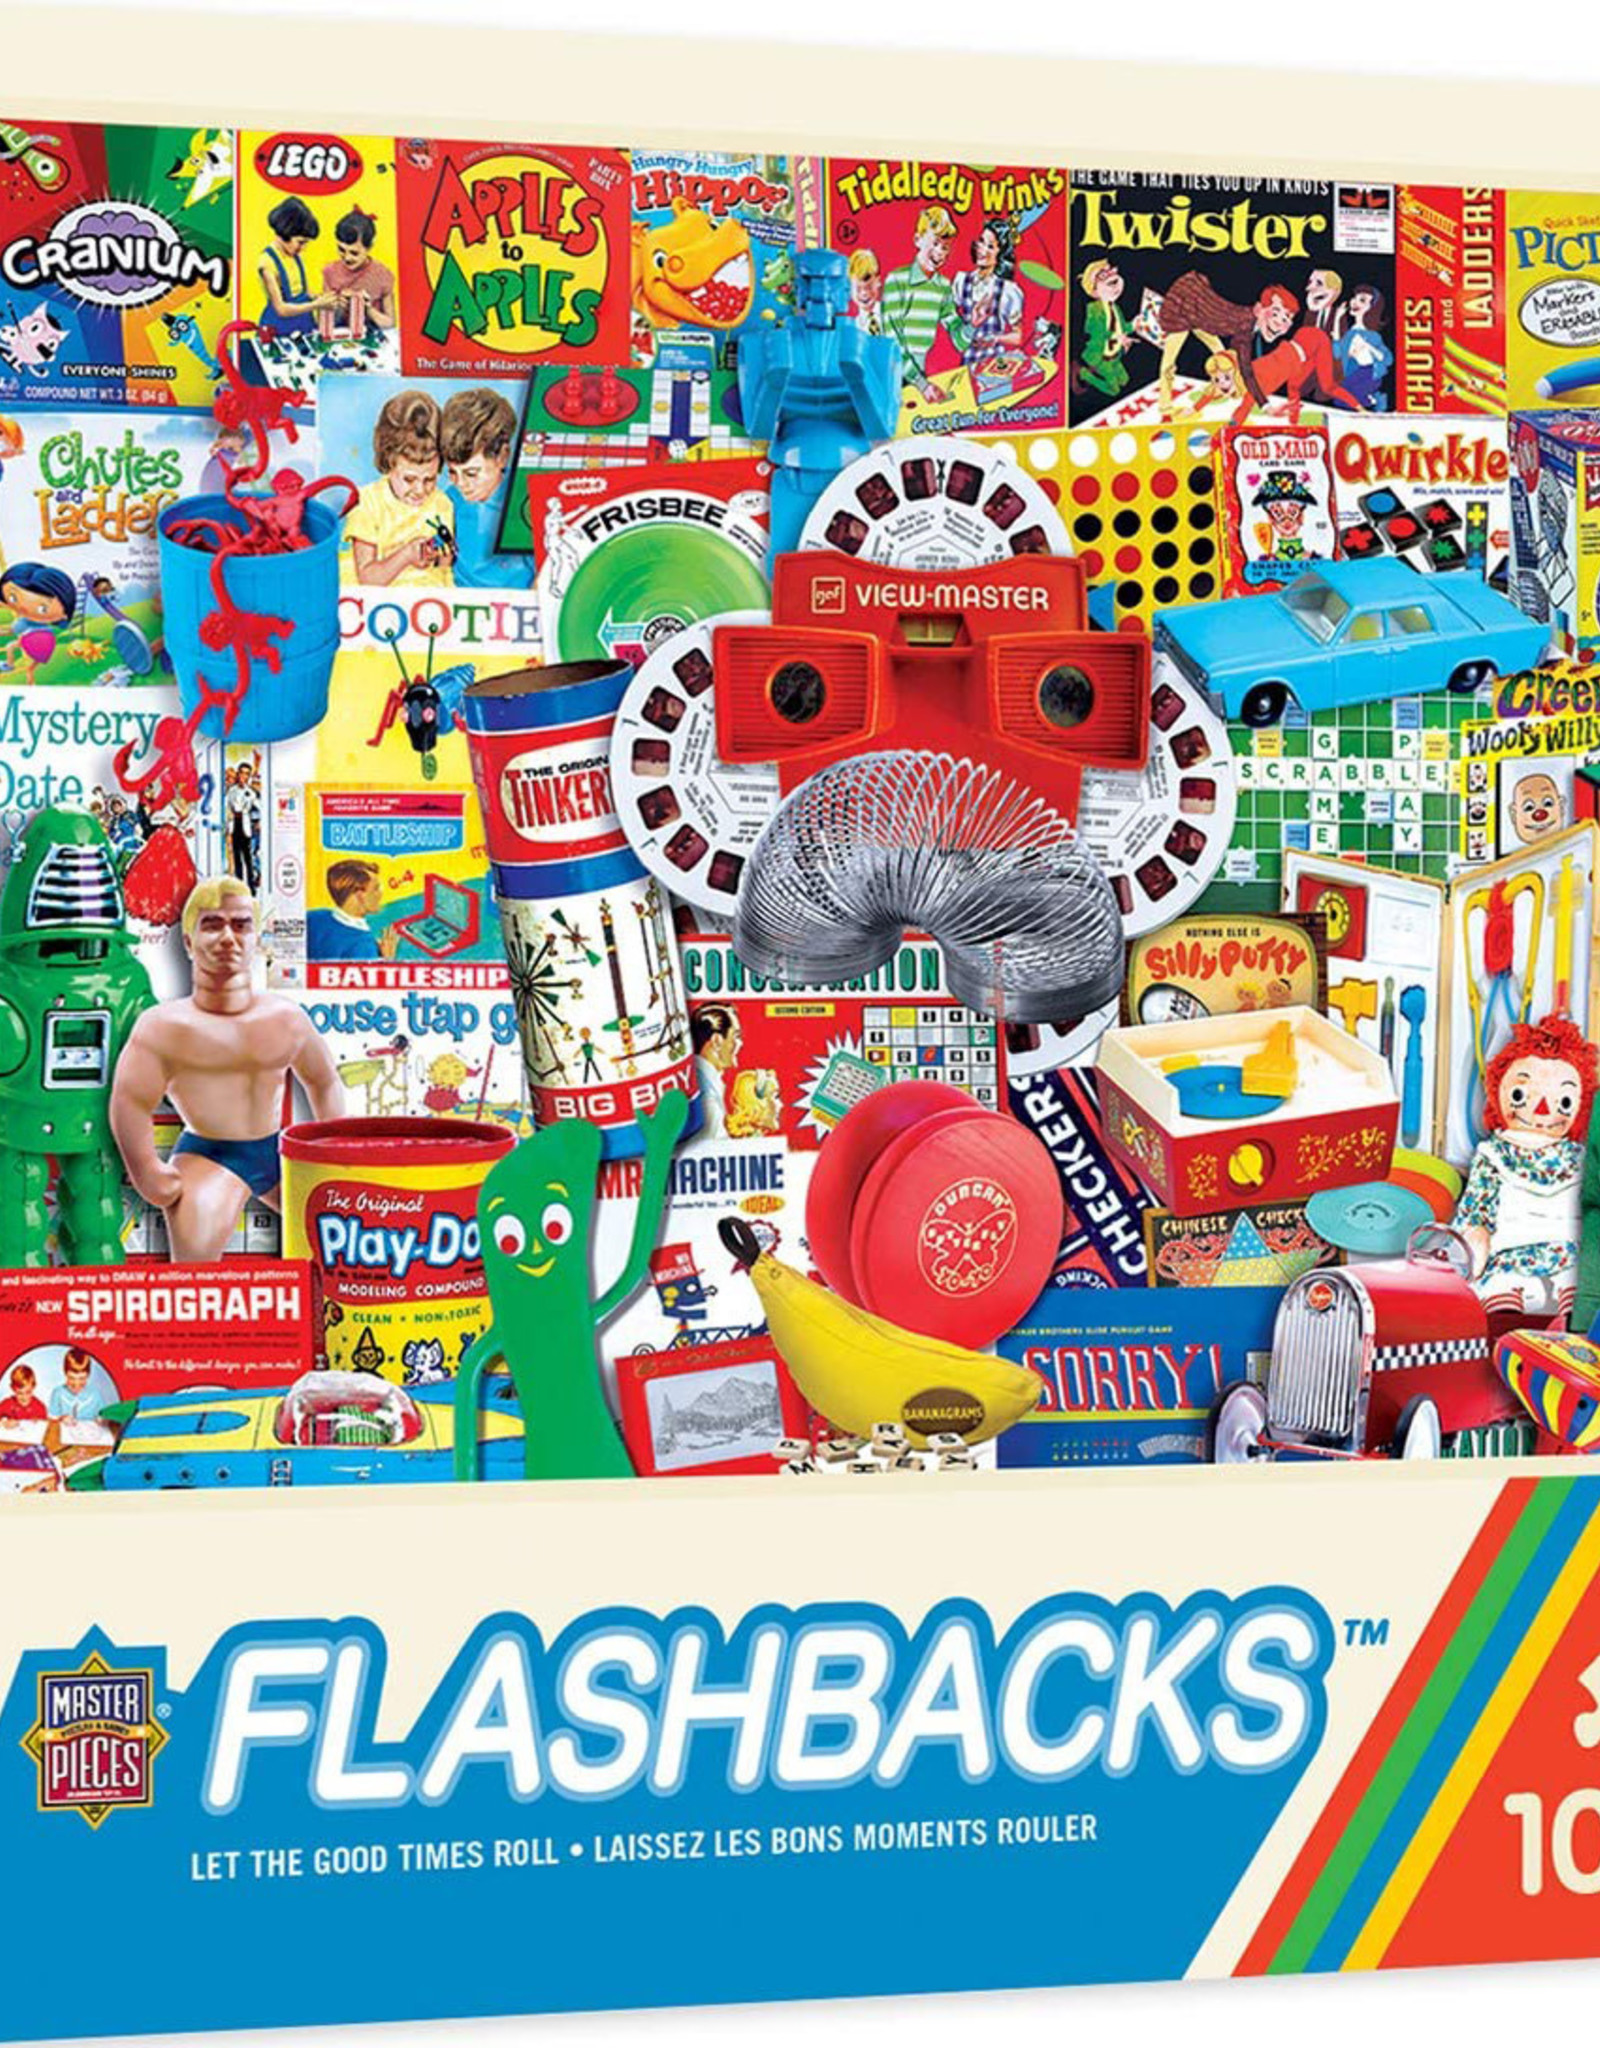 Master Pieces 1000pc Flashbacks - Let the Good Times Roll